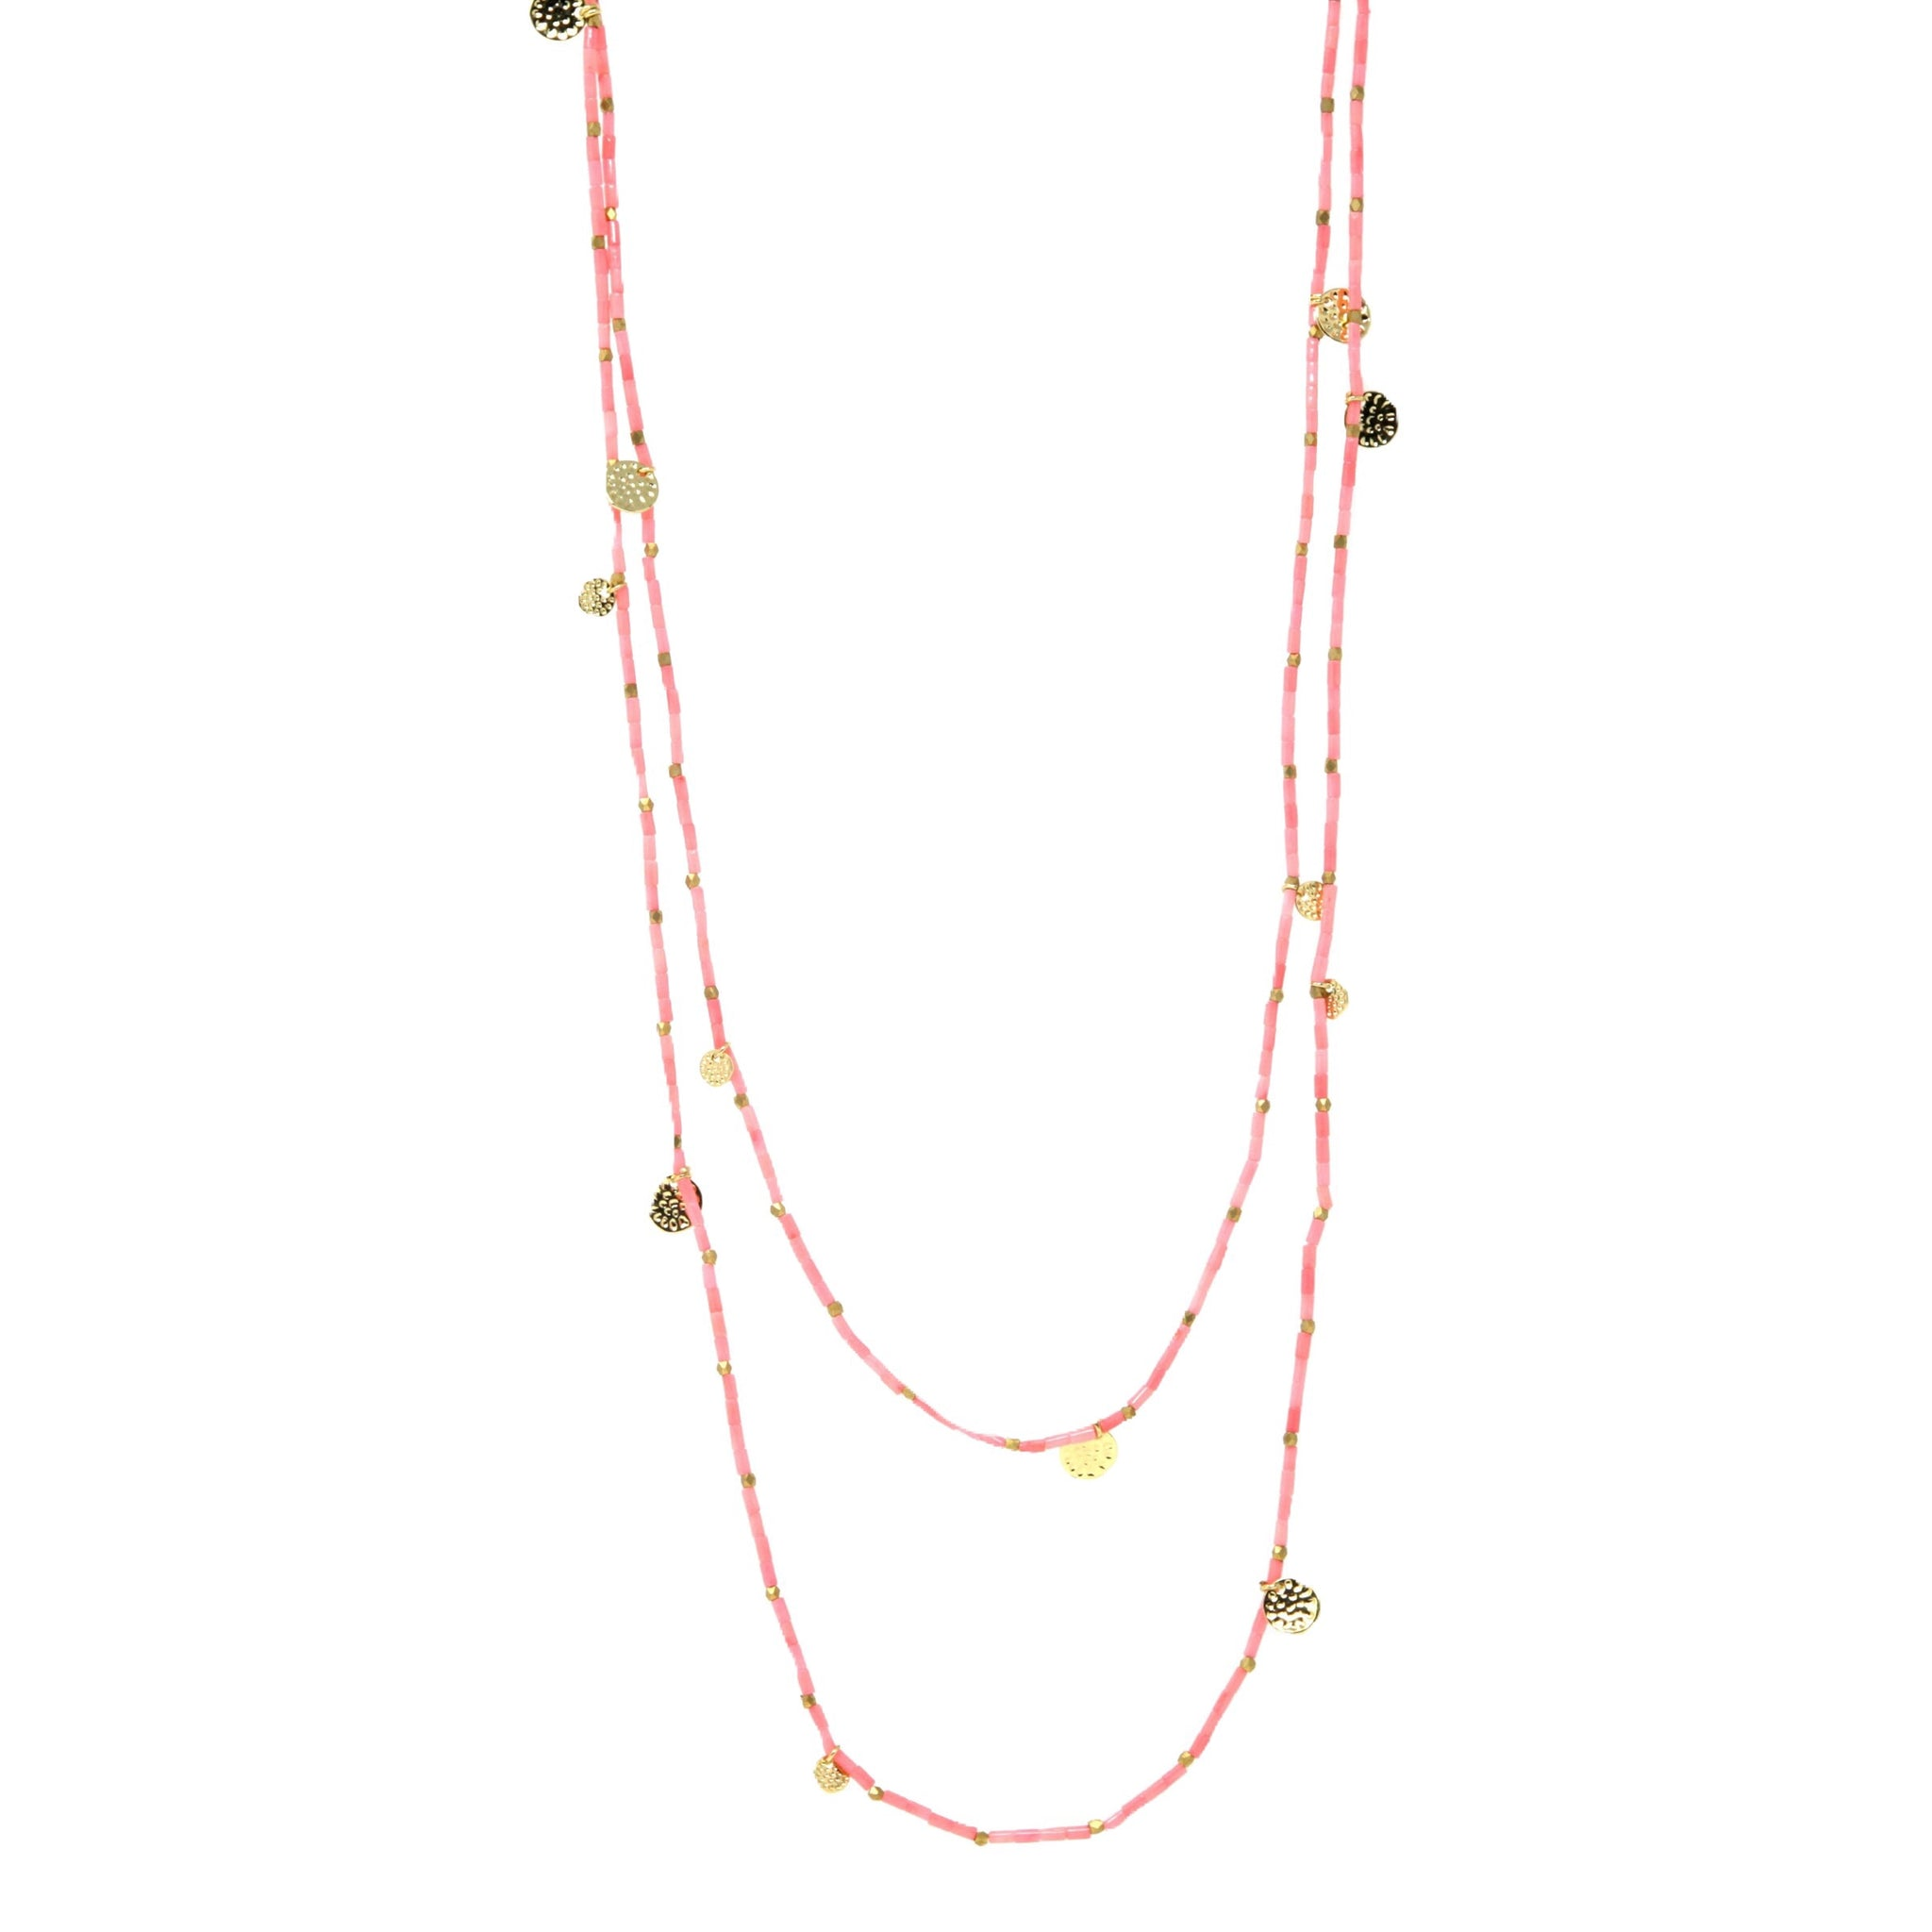 Balearic Necklace Pink